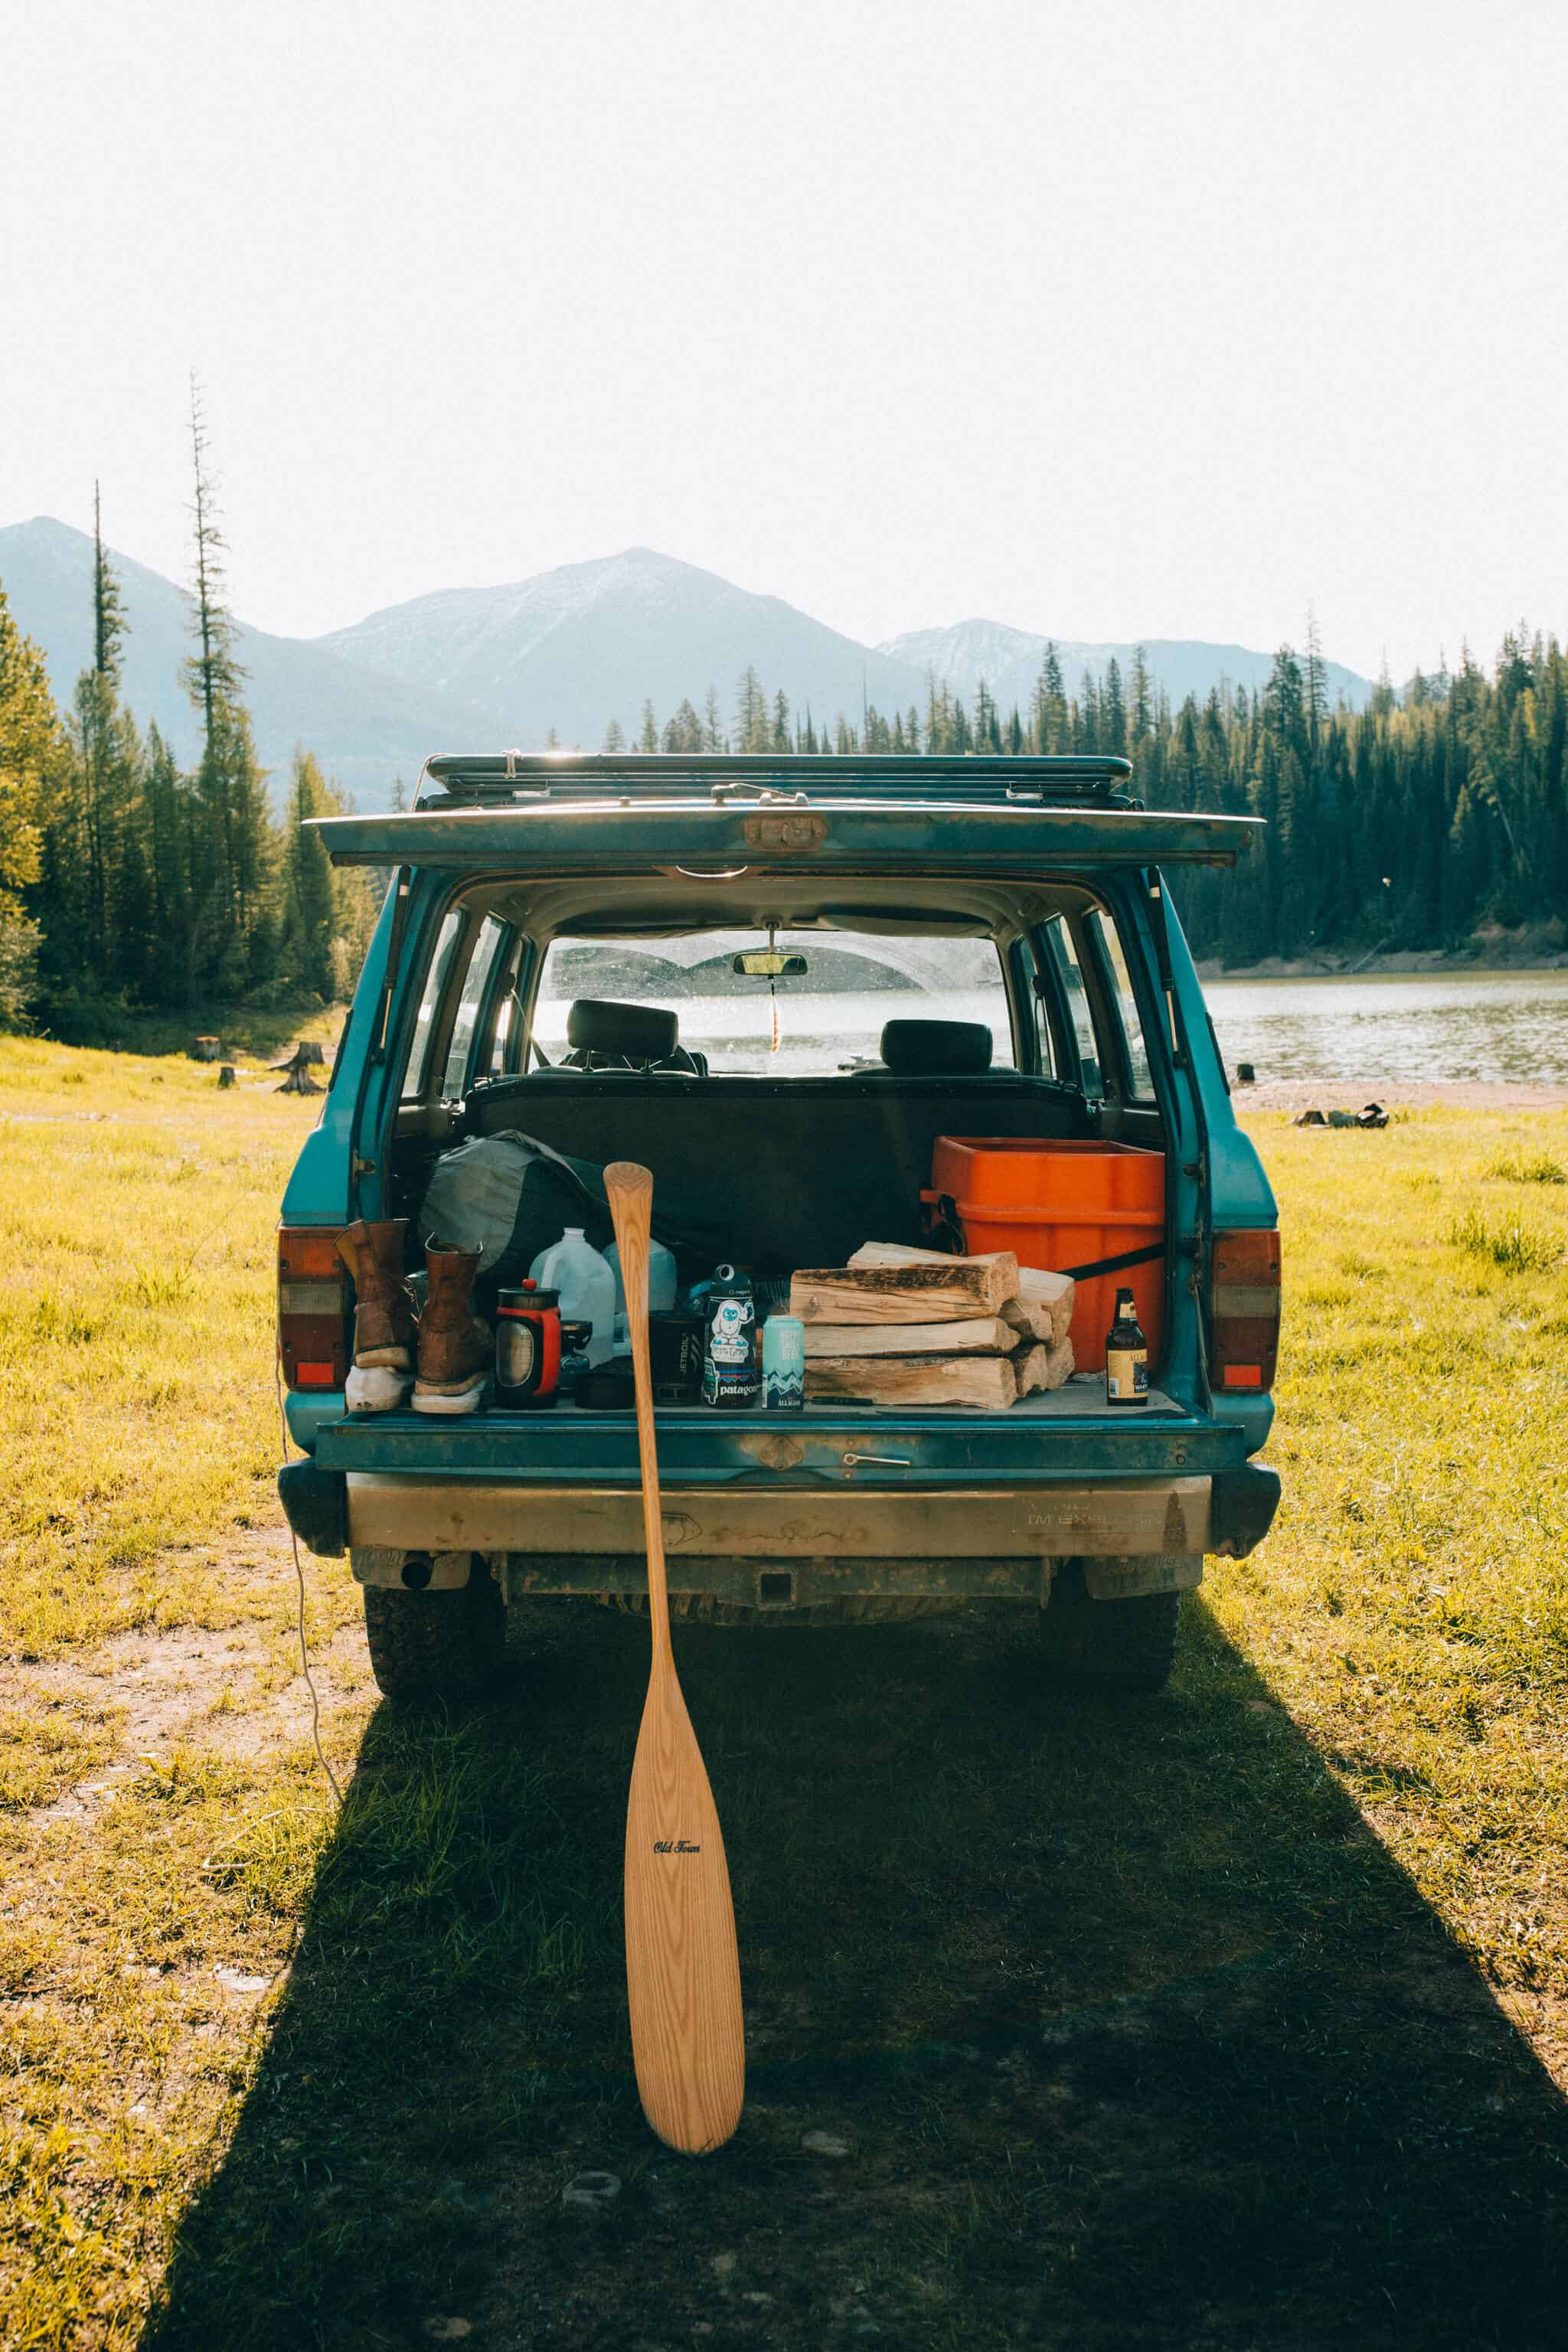 camping supplies in back of Toyota FJ cruiser